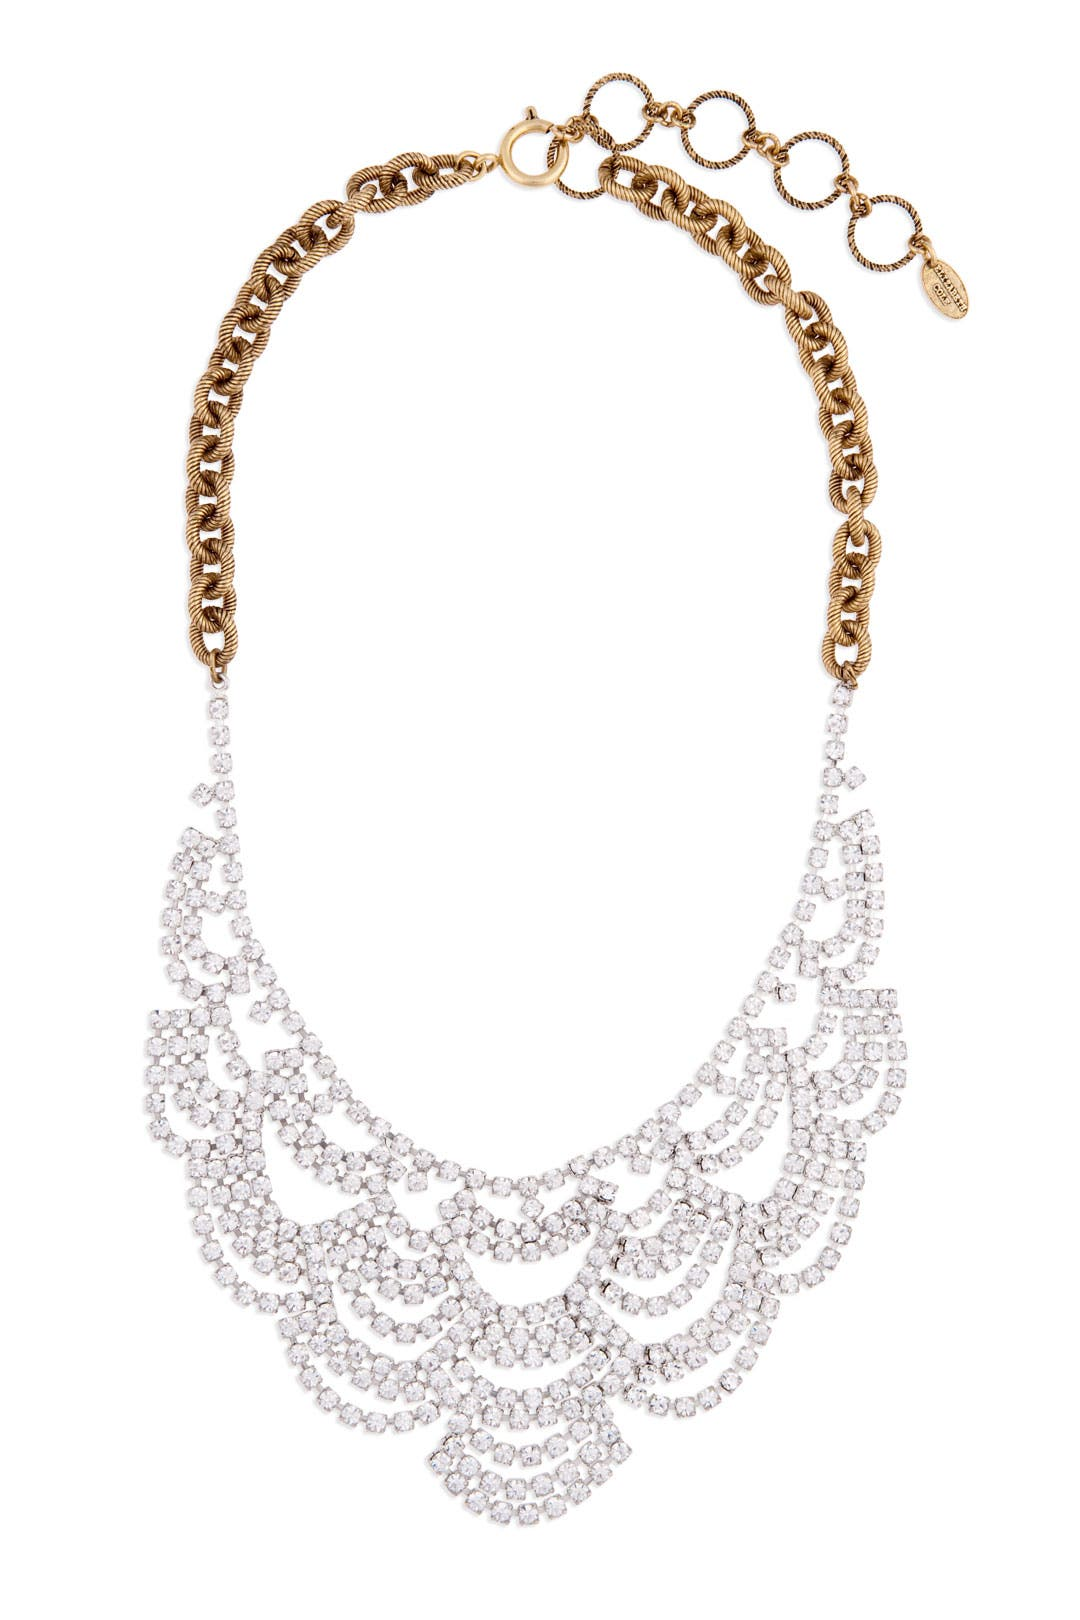 Laced with Crystal Necklace by Elizabeth Cole